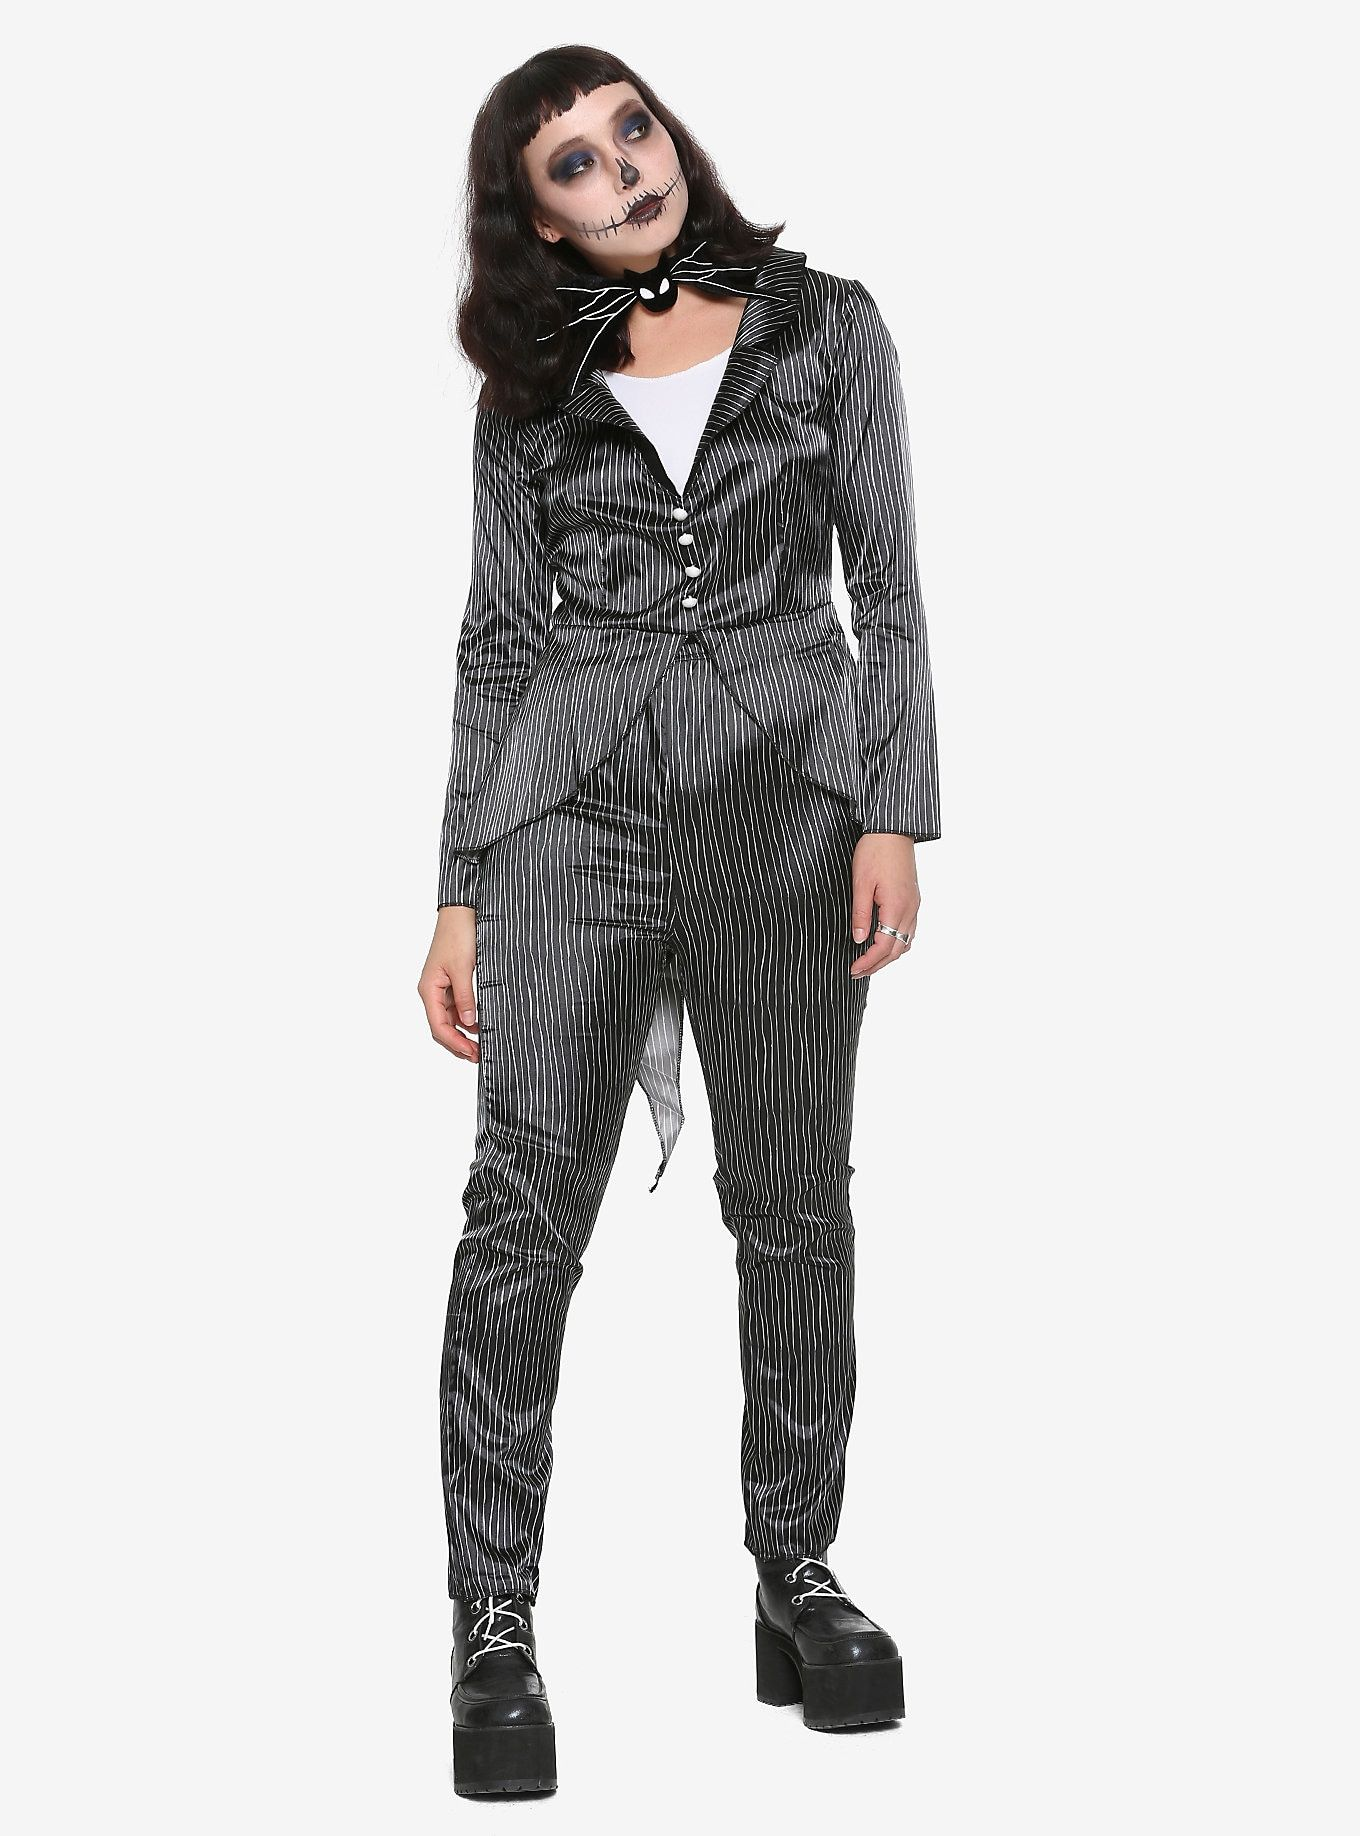 Female Jack Skellington The Nightmare Before Christmas